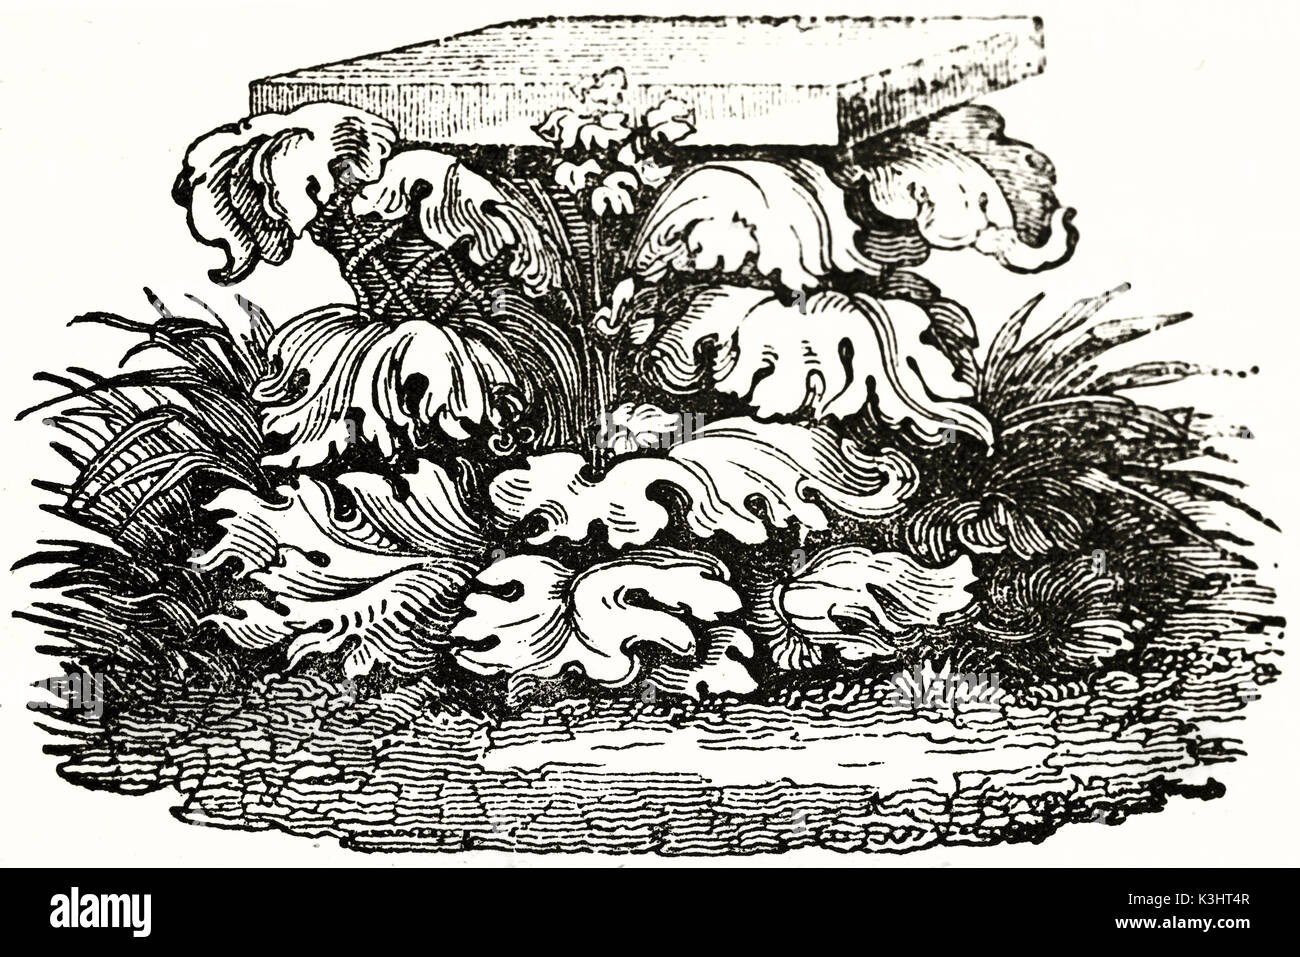 Old illustration of a acanthus leaves growing around a covered basket, so creating the idea of Corinthian capital. - Stock Image